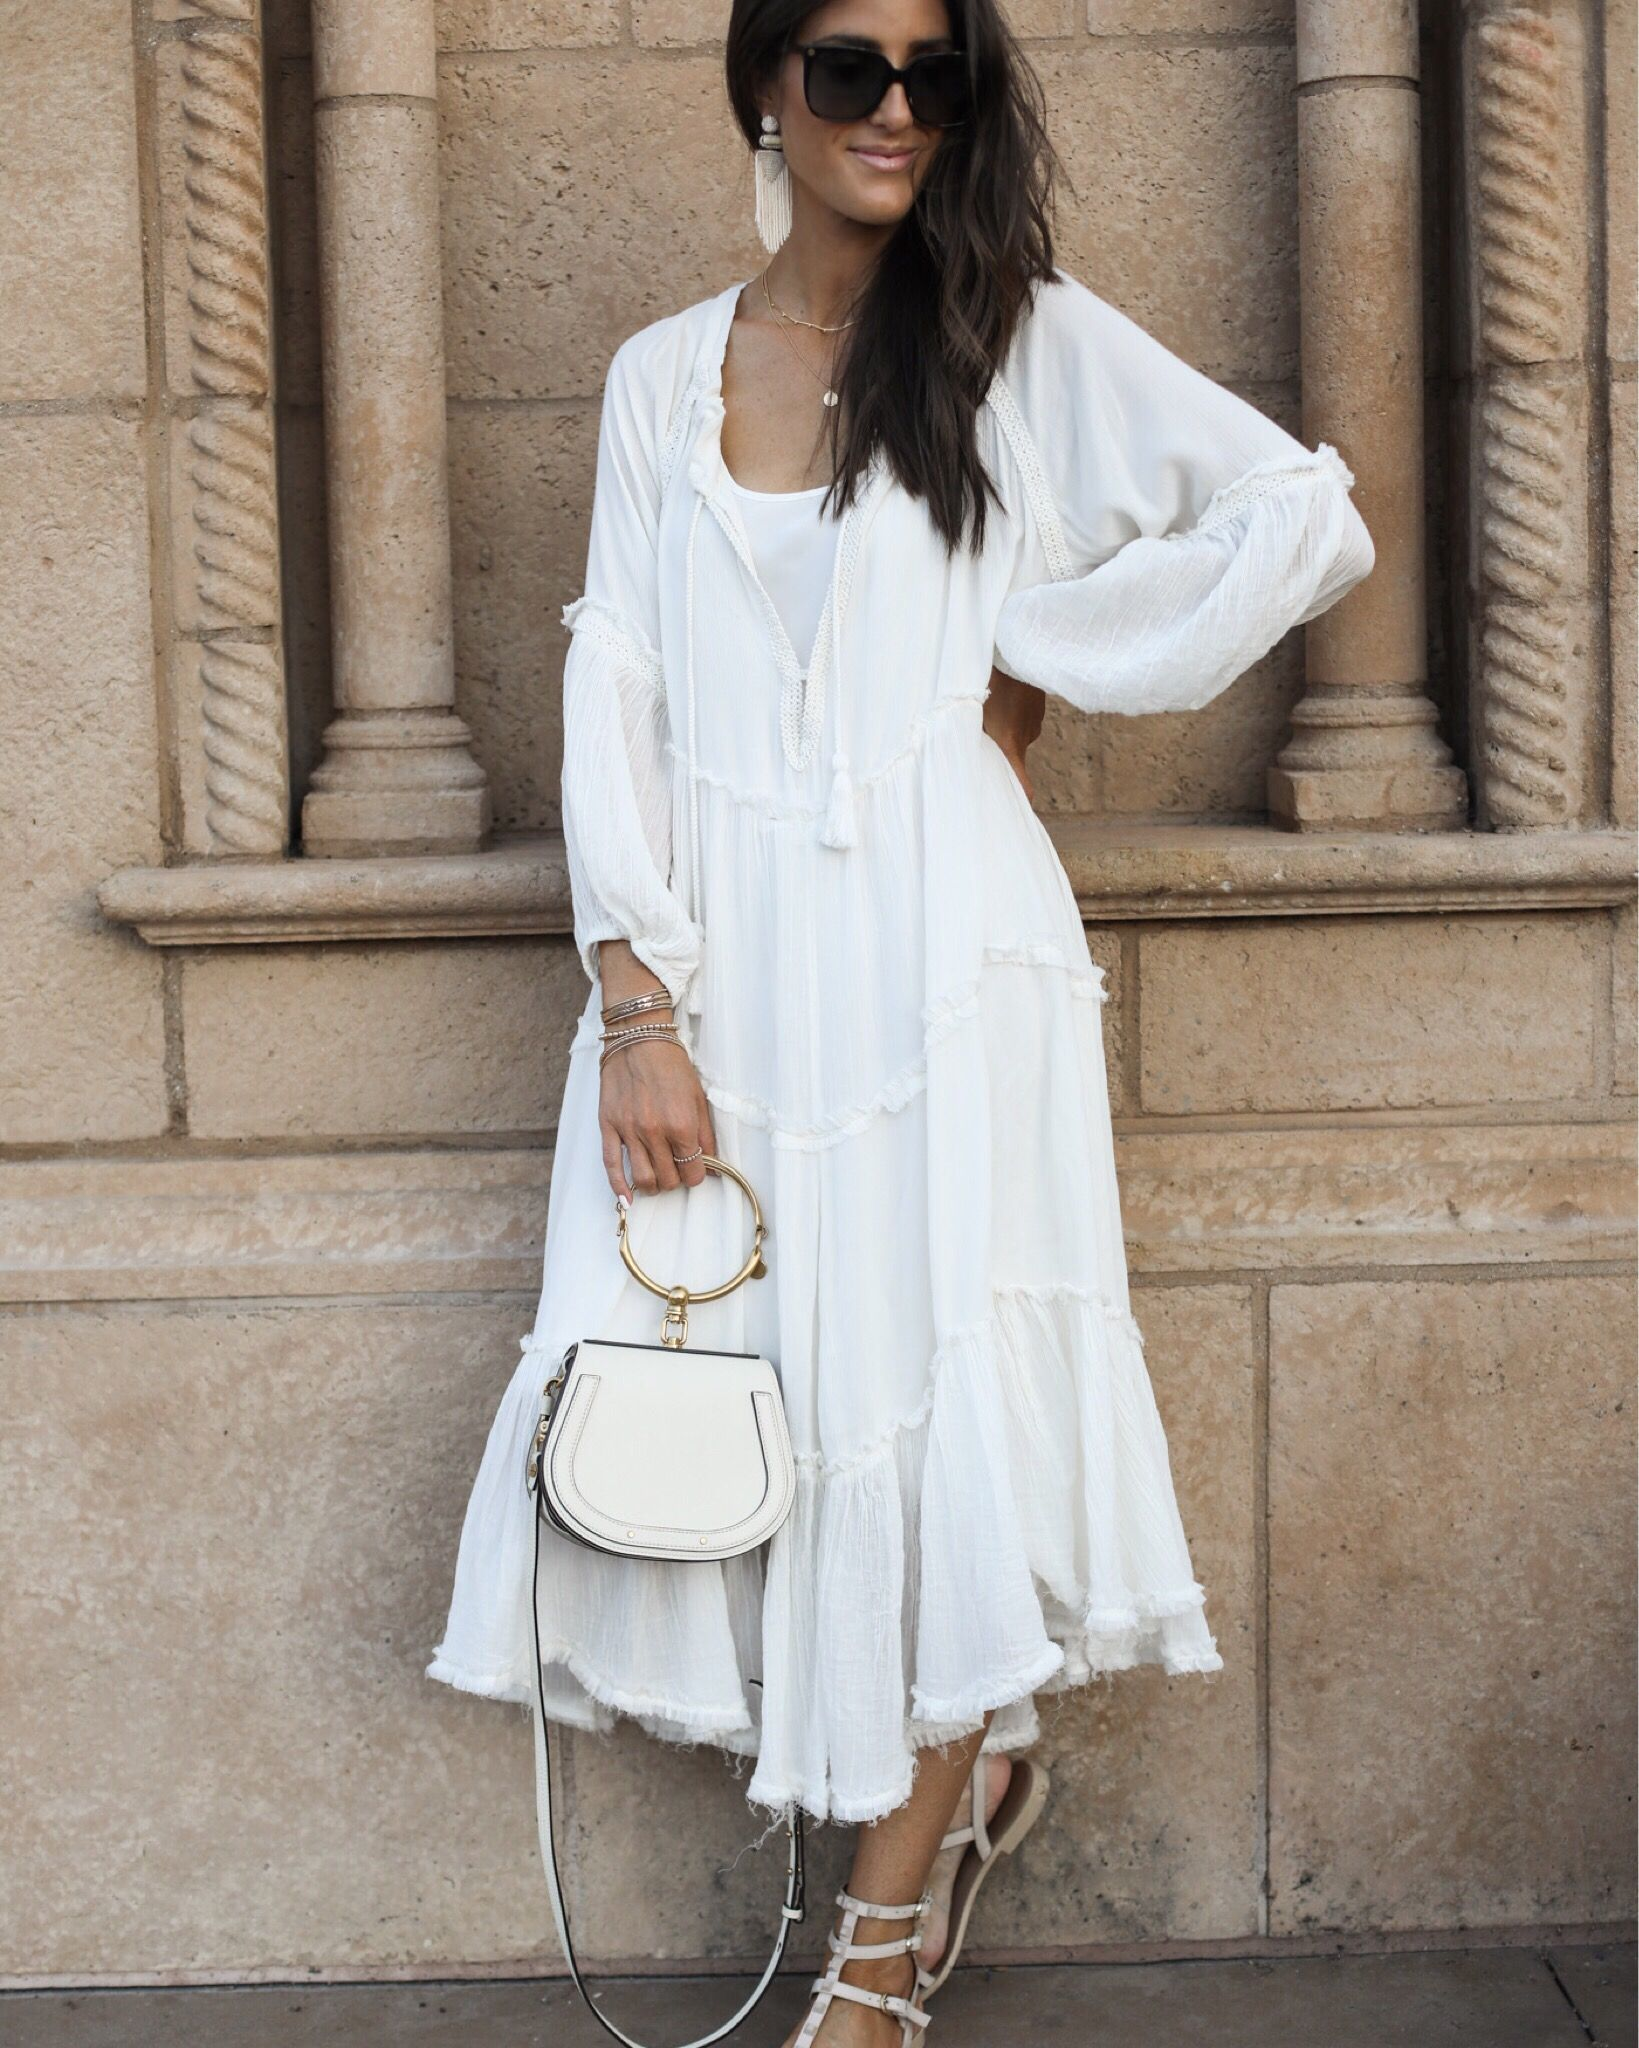 All White Spring Outfit Everyday Outfits Boho Style Dresses Fashion [ 2048 x 1639 Pixel ]